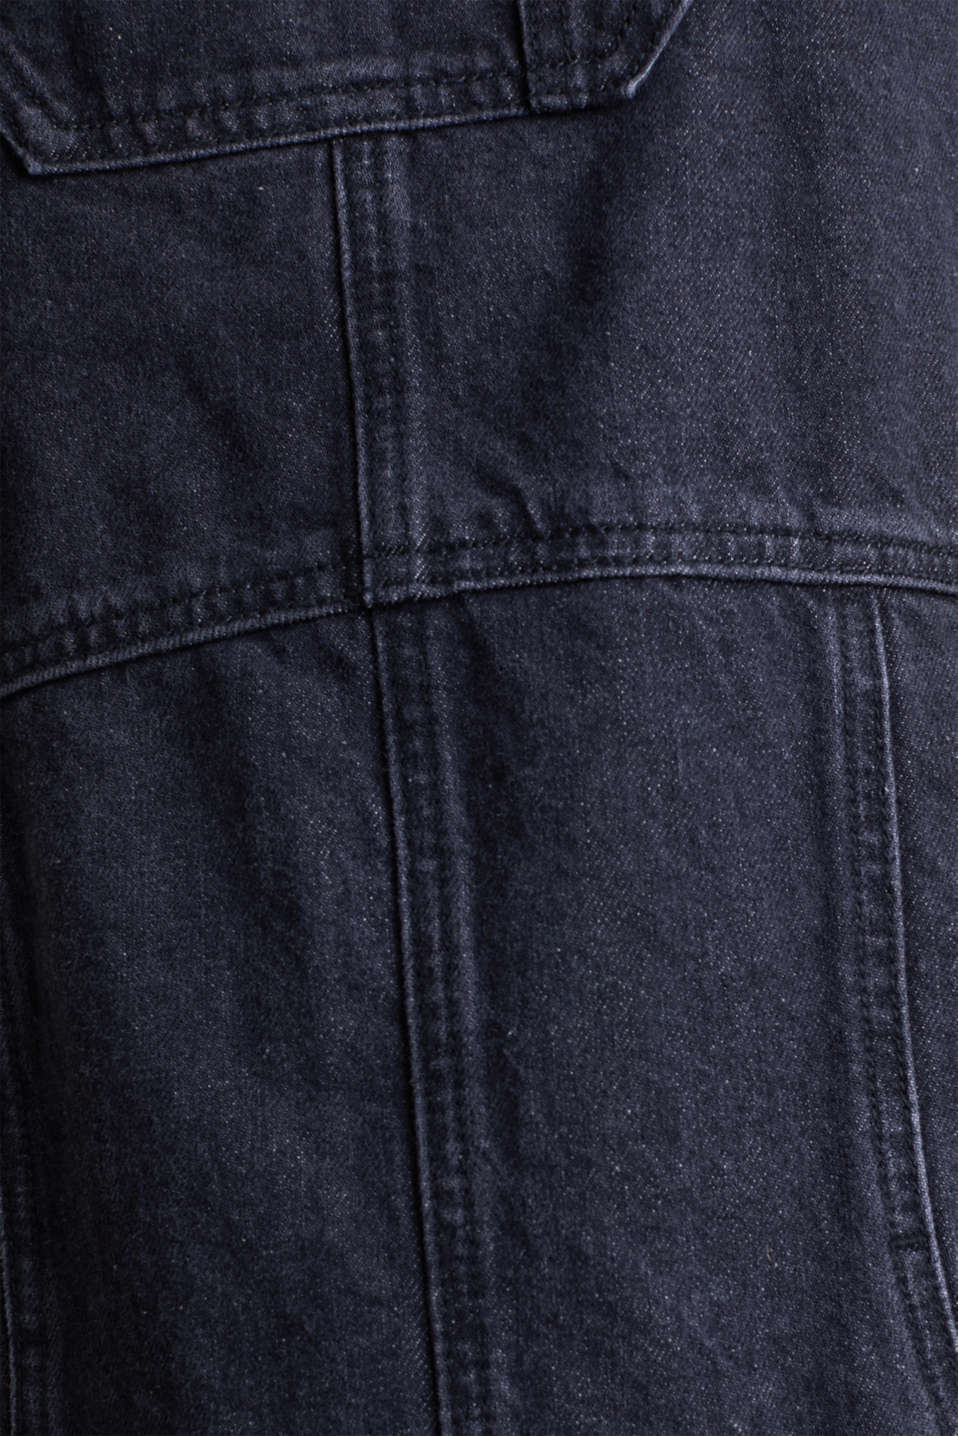 Dresses denim, BLACK MEDIUM WASH, detail image number 2